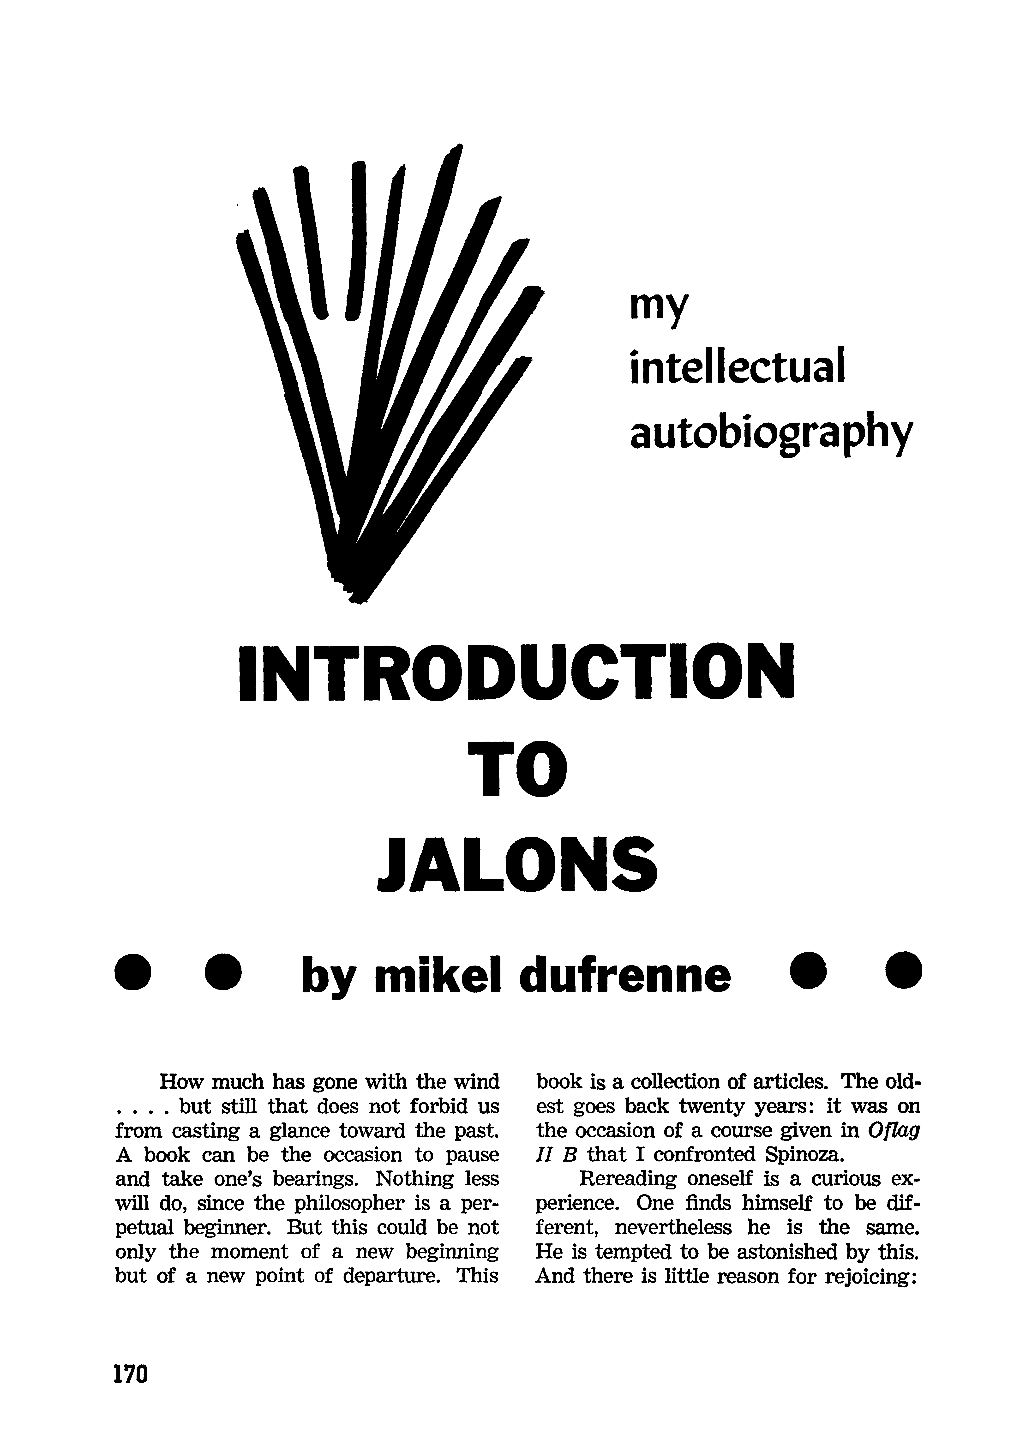 Introduction to Jalons — my intellectual Autobiography - Mikel